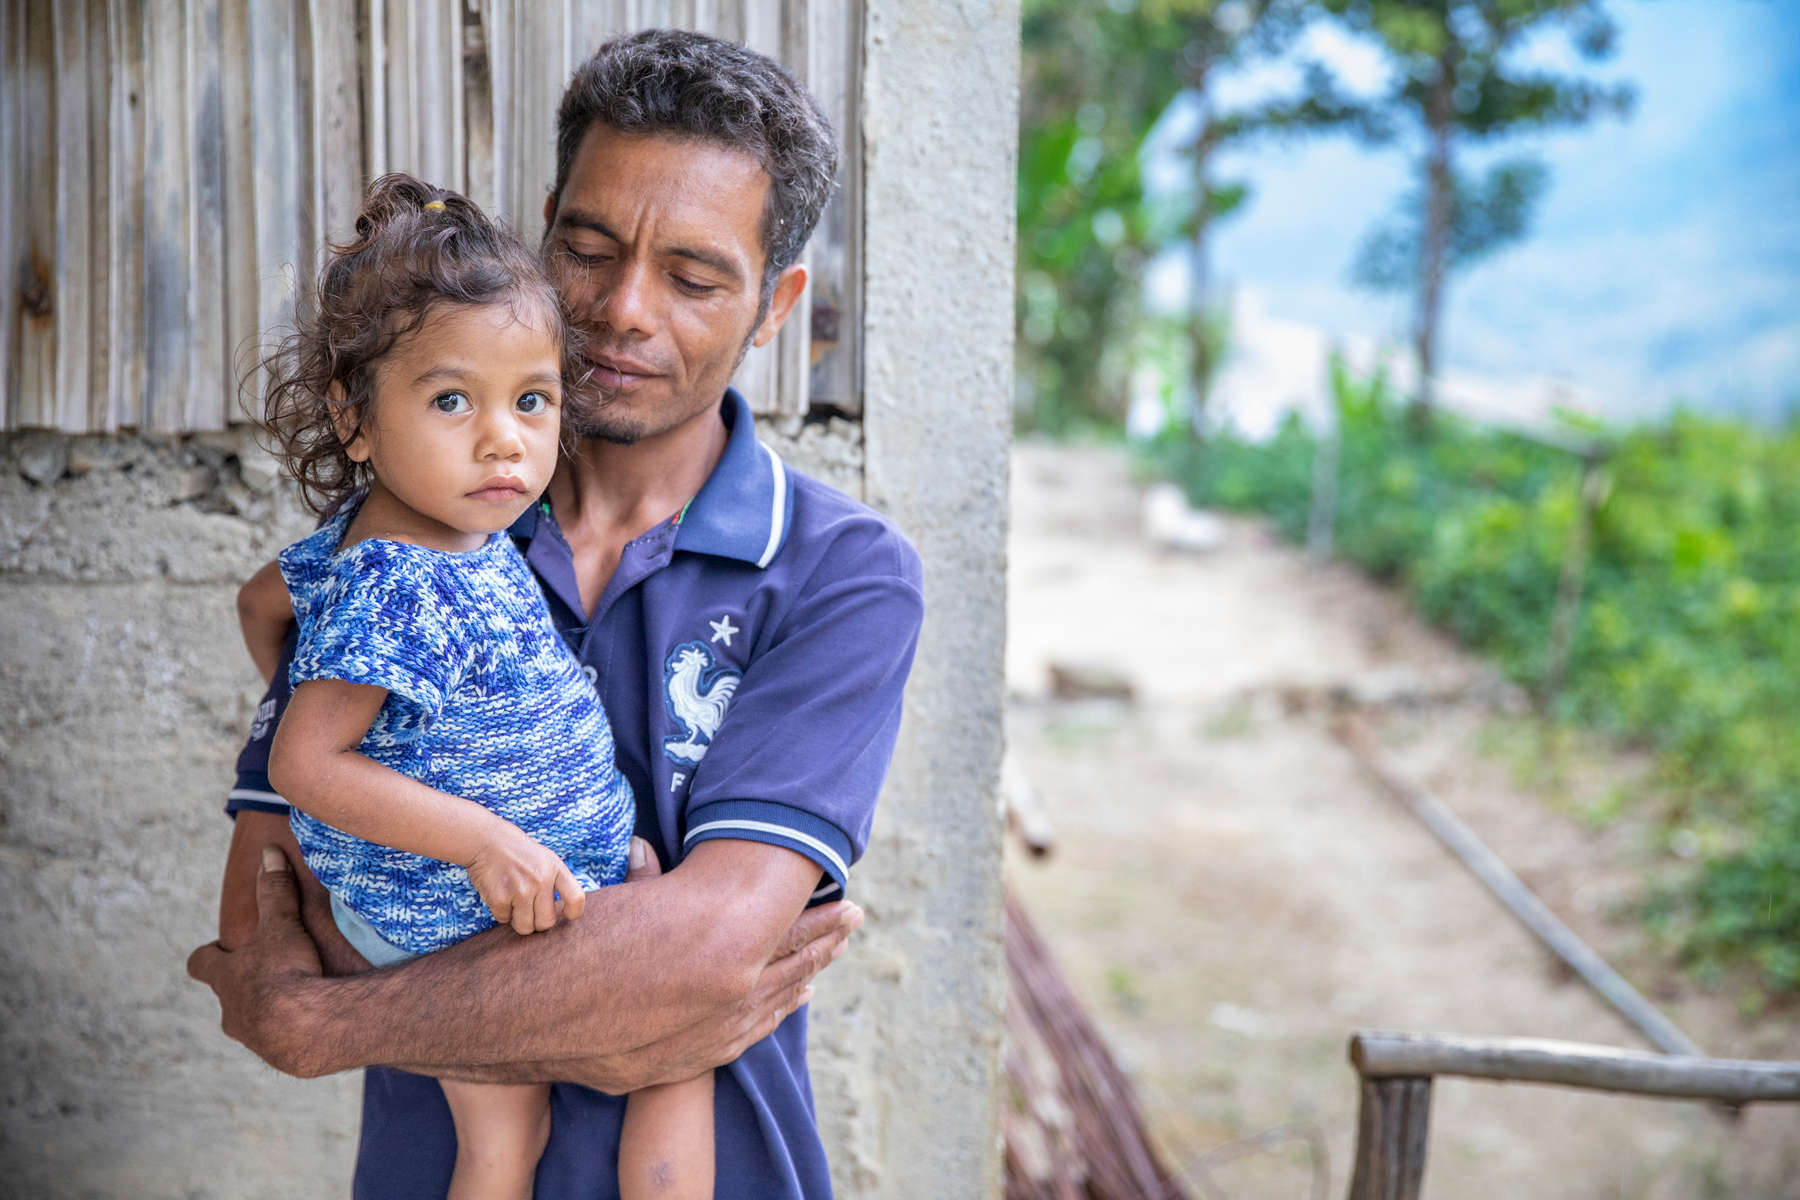 """Romeo, 28, holds his daughter Maria, 2. His niece Lourdes is a 19-year-old girl whose dream is to become the Minister of Education. For four years now, she's been using a solar lantern provided by Mercy Corps to study at night, after completing her daily chores.When asked if she had any advice or words of encouragement to share with other, younger Timorese girls who are chasing their own dreams, Lourdes said {quote}Being young, a girl, is something to be grateful for. Take the opportunity to chase your dreams — while your parents are still here, while they're still able to educate you and send you to school. Go to school, and take advantage of any opportunity to focus on your dreams. Don't think about something else. Most girls in Timor marry young. Please, don't get married young. Finish your education, find a job, and help your parents, give back to your parents for helping educate you."""""""